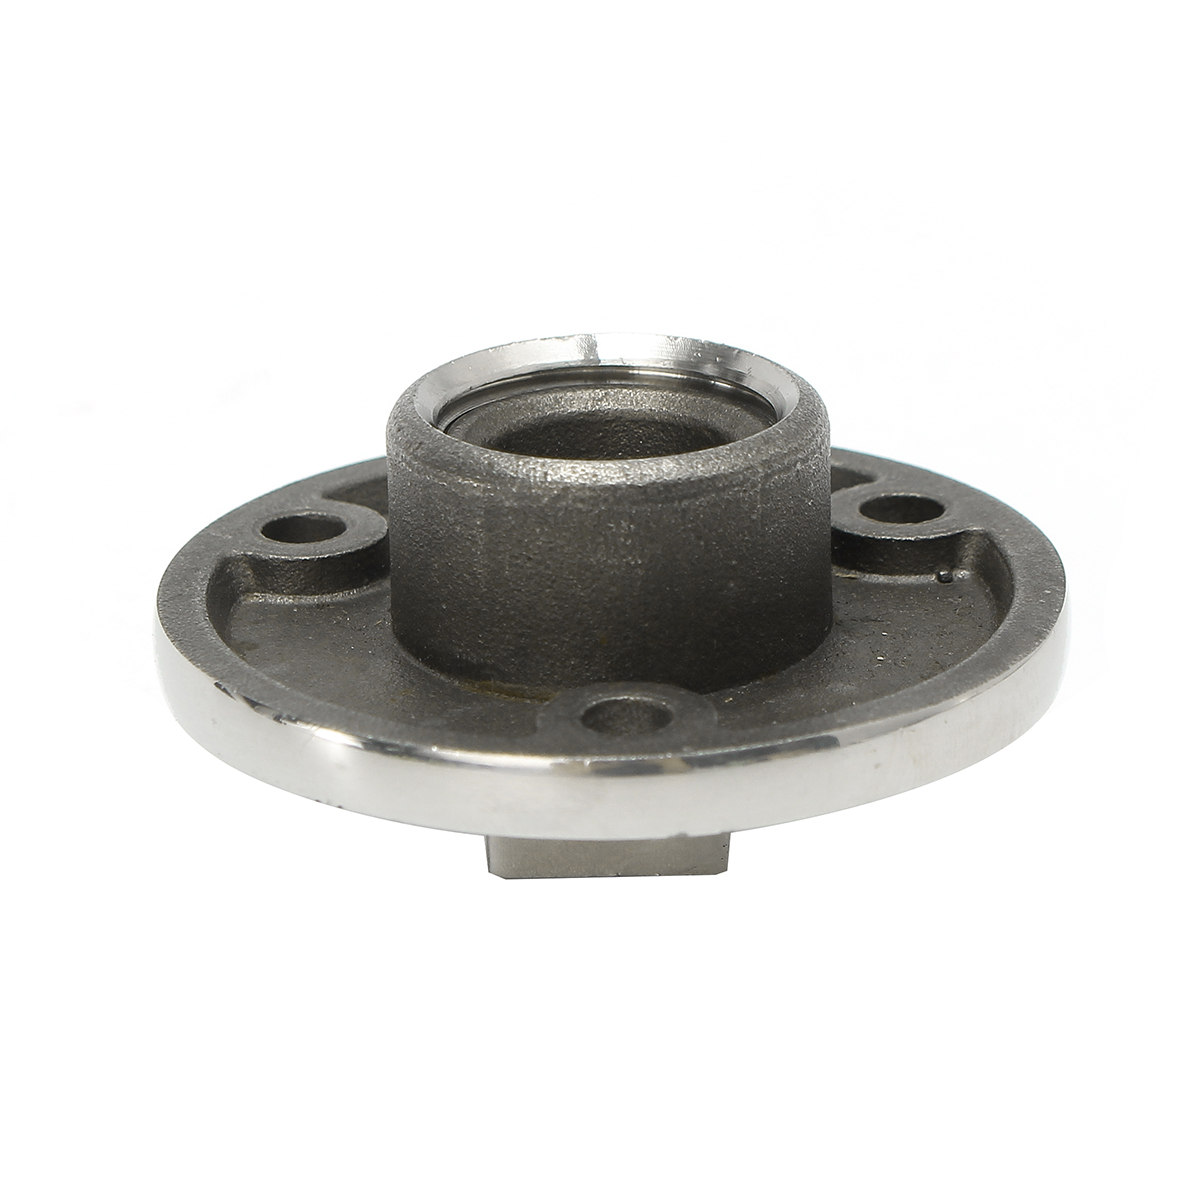 316 Stainless Steel Marine Garboard Drain Plug for Boats Fits 1 Inch Diameter Hole